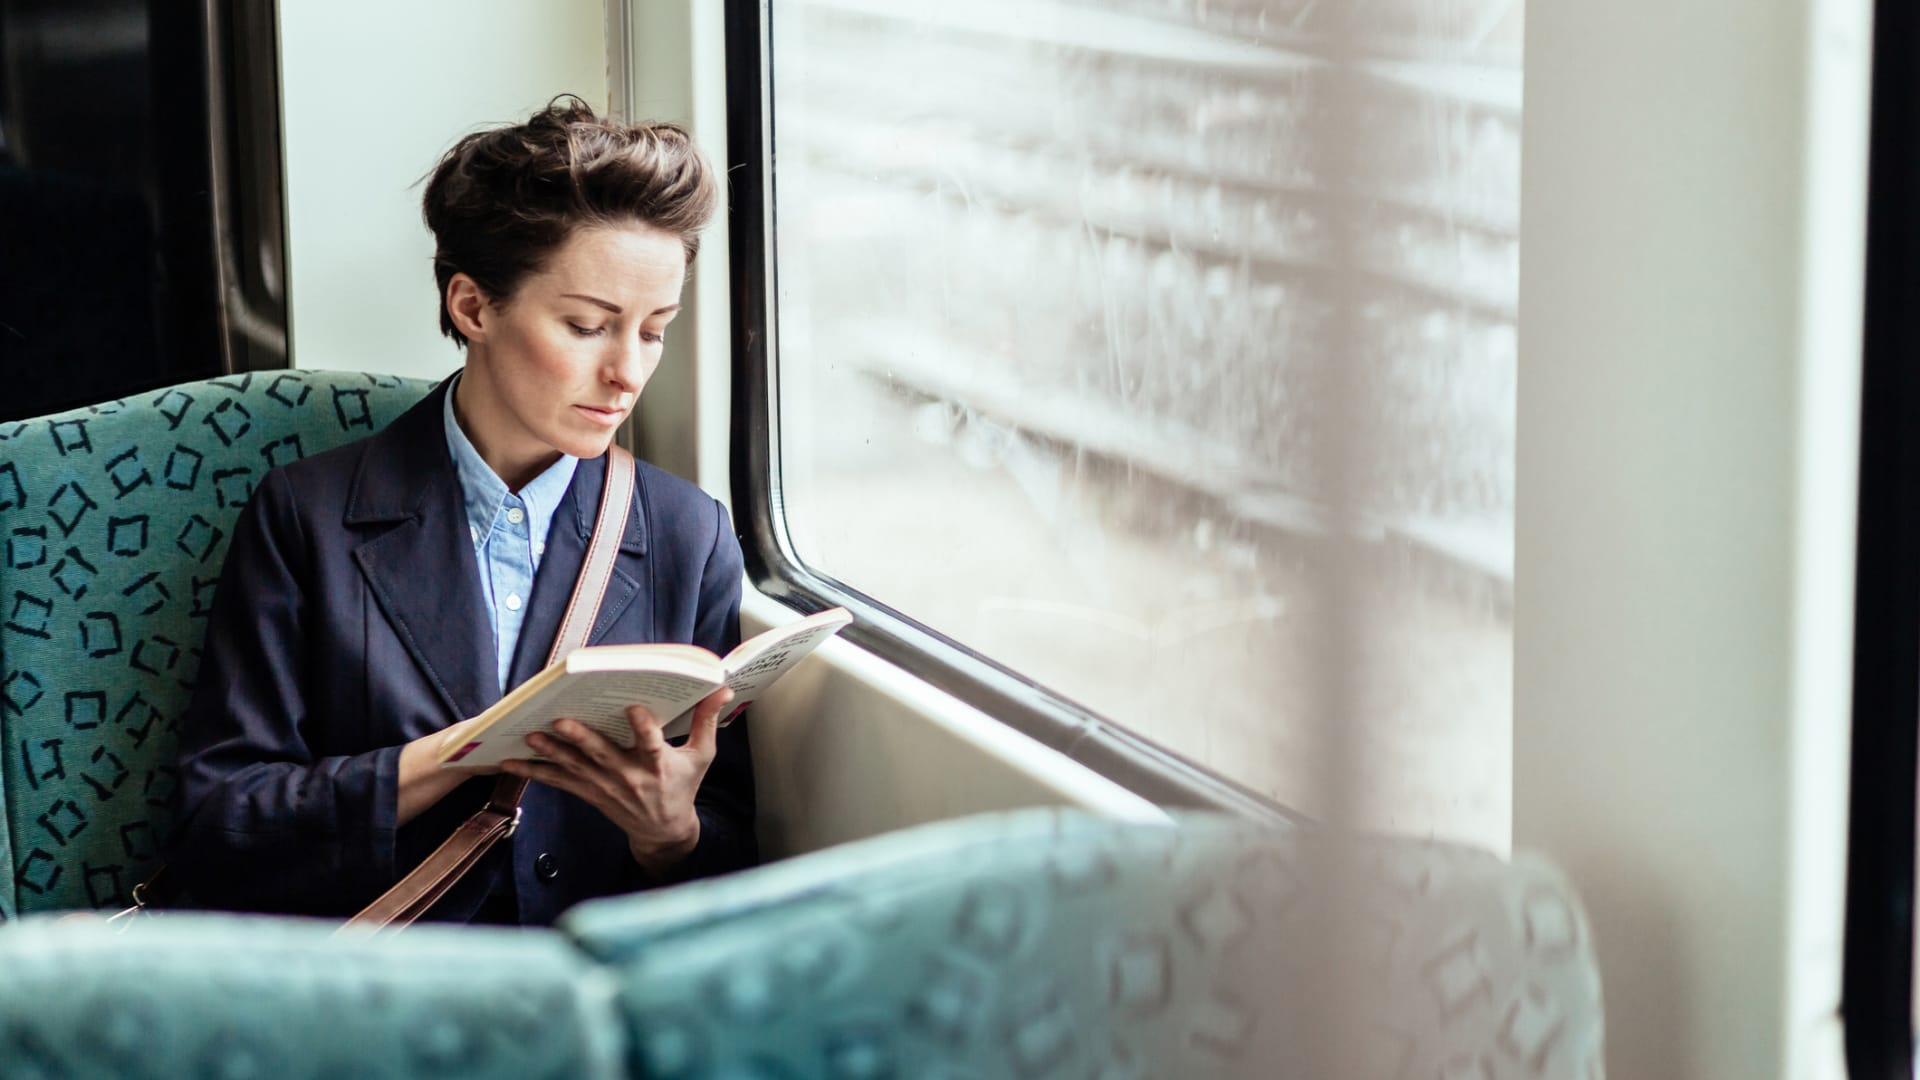 The 6 Best Business Books of 2020